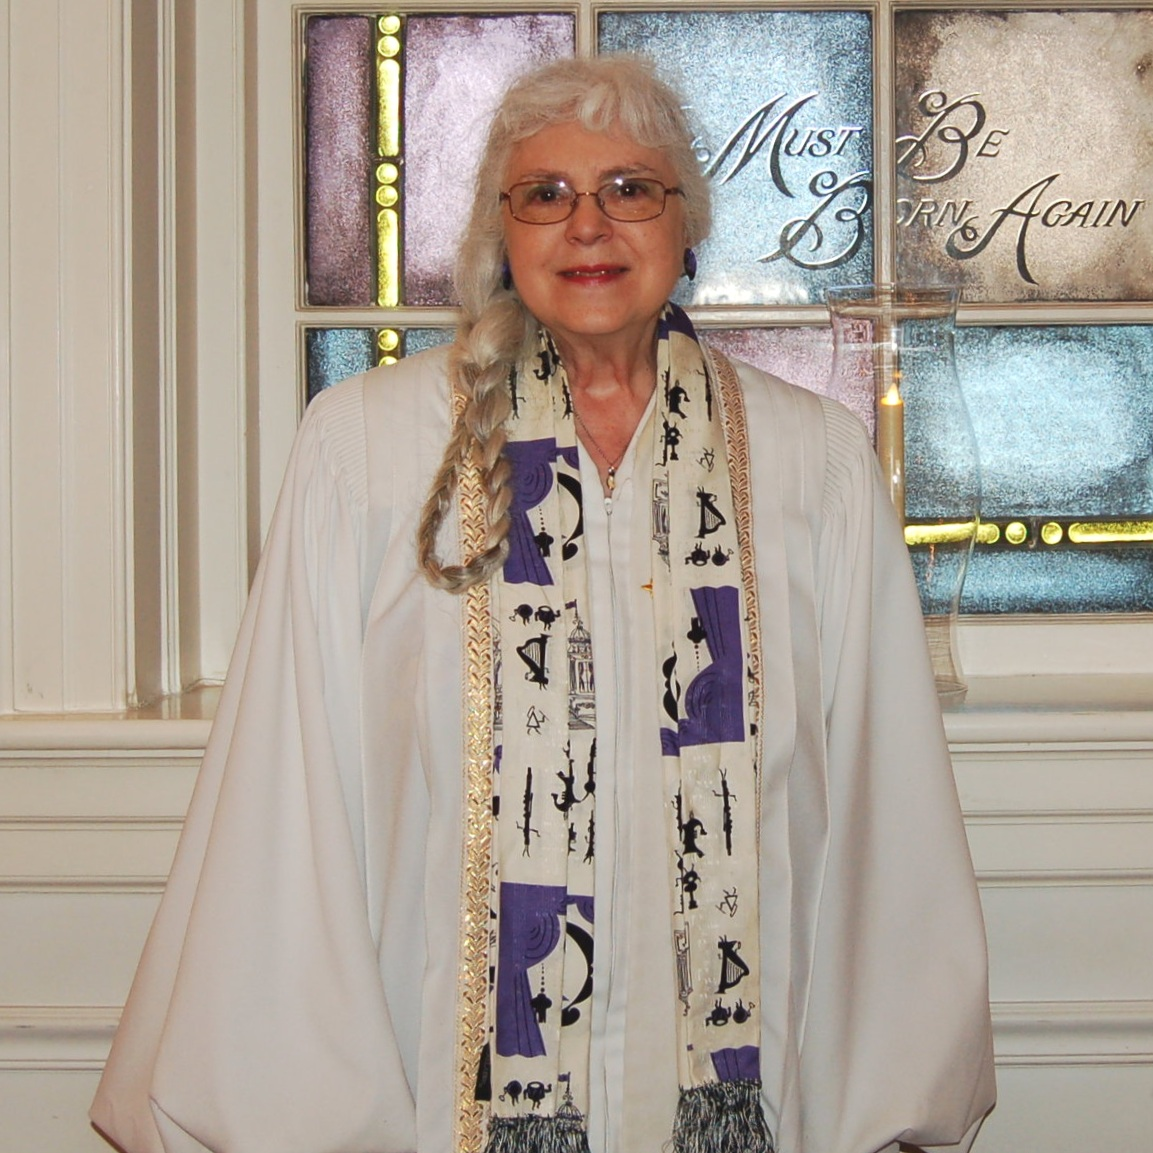 Janet kesslerorganist - Jan has served as our primary organist/pianist at Glen Allen since 2004, and is an active member of our congregation. In addition to being a member at Glen Allen Baptist, Jan is a member of the VA Baptist Women's Chorale.